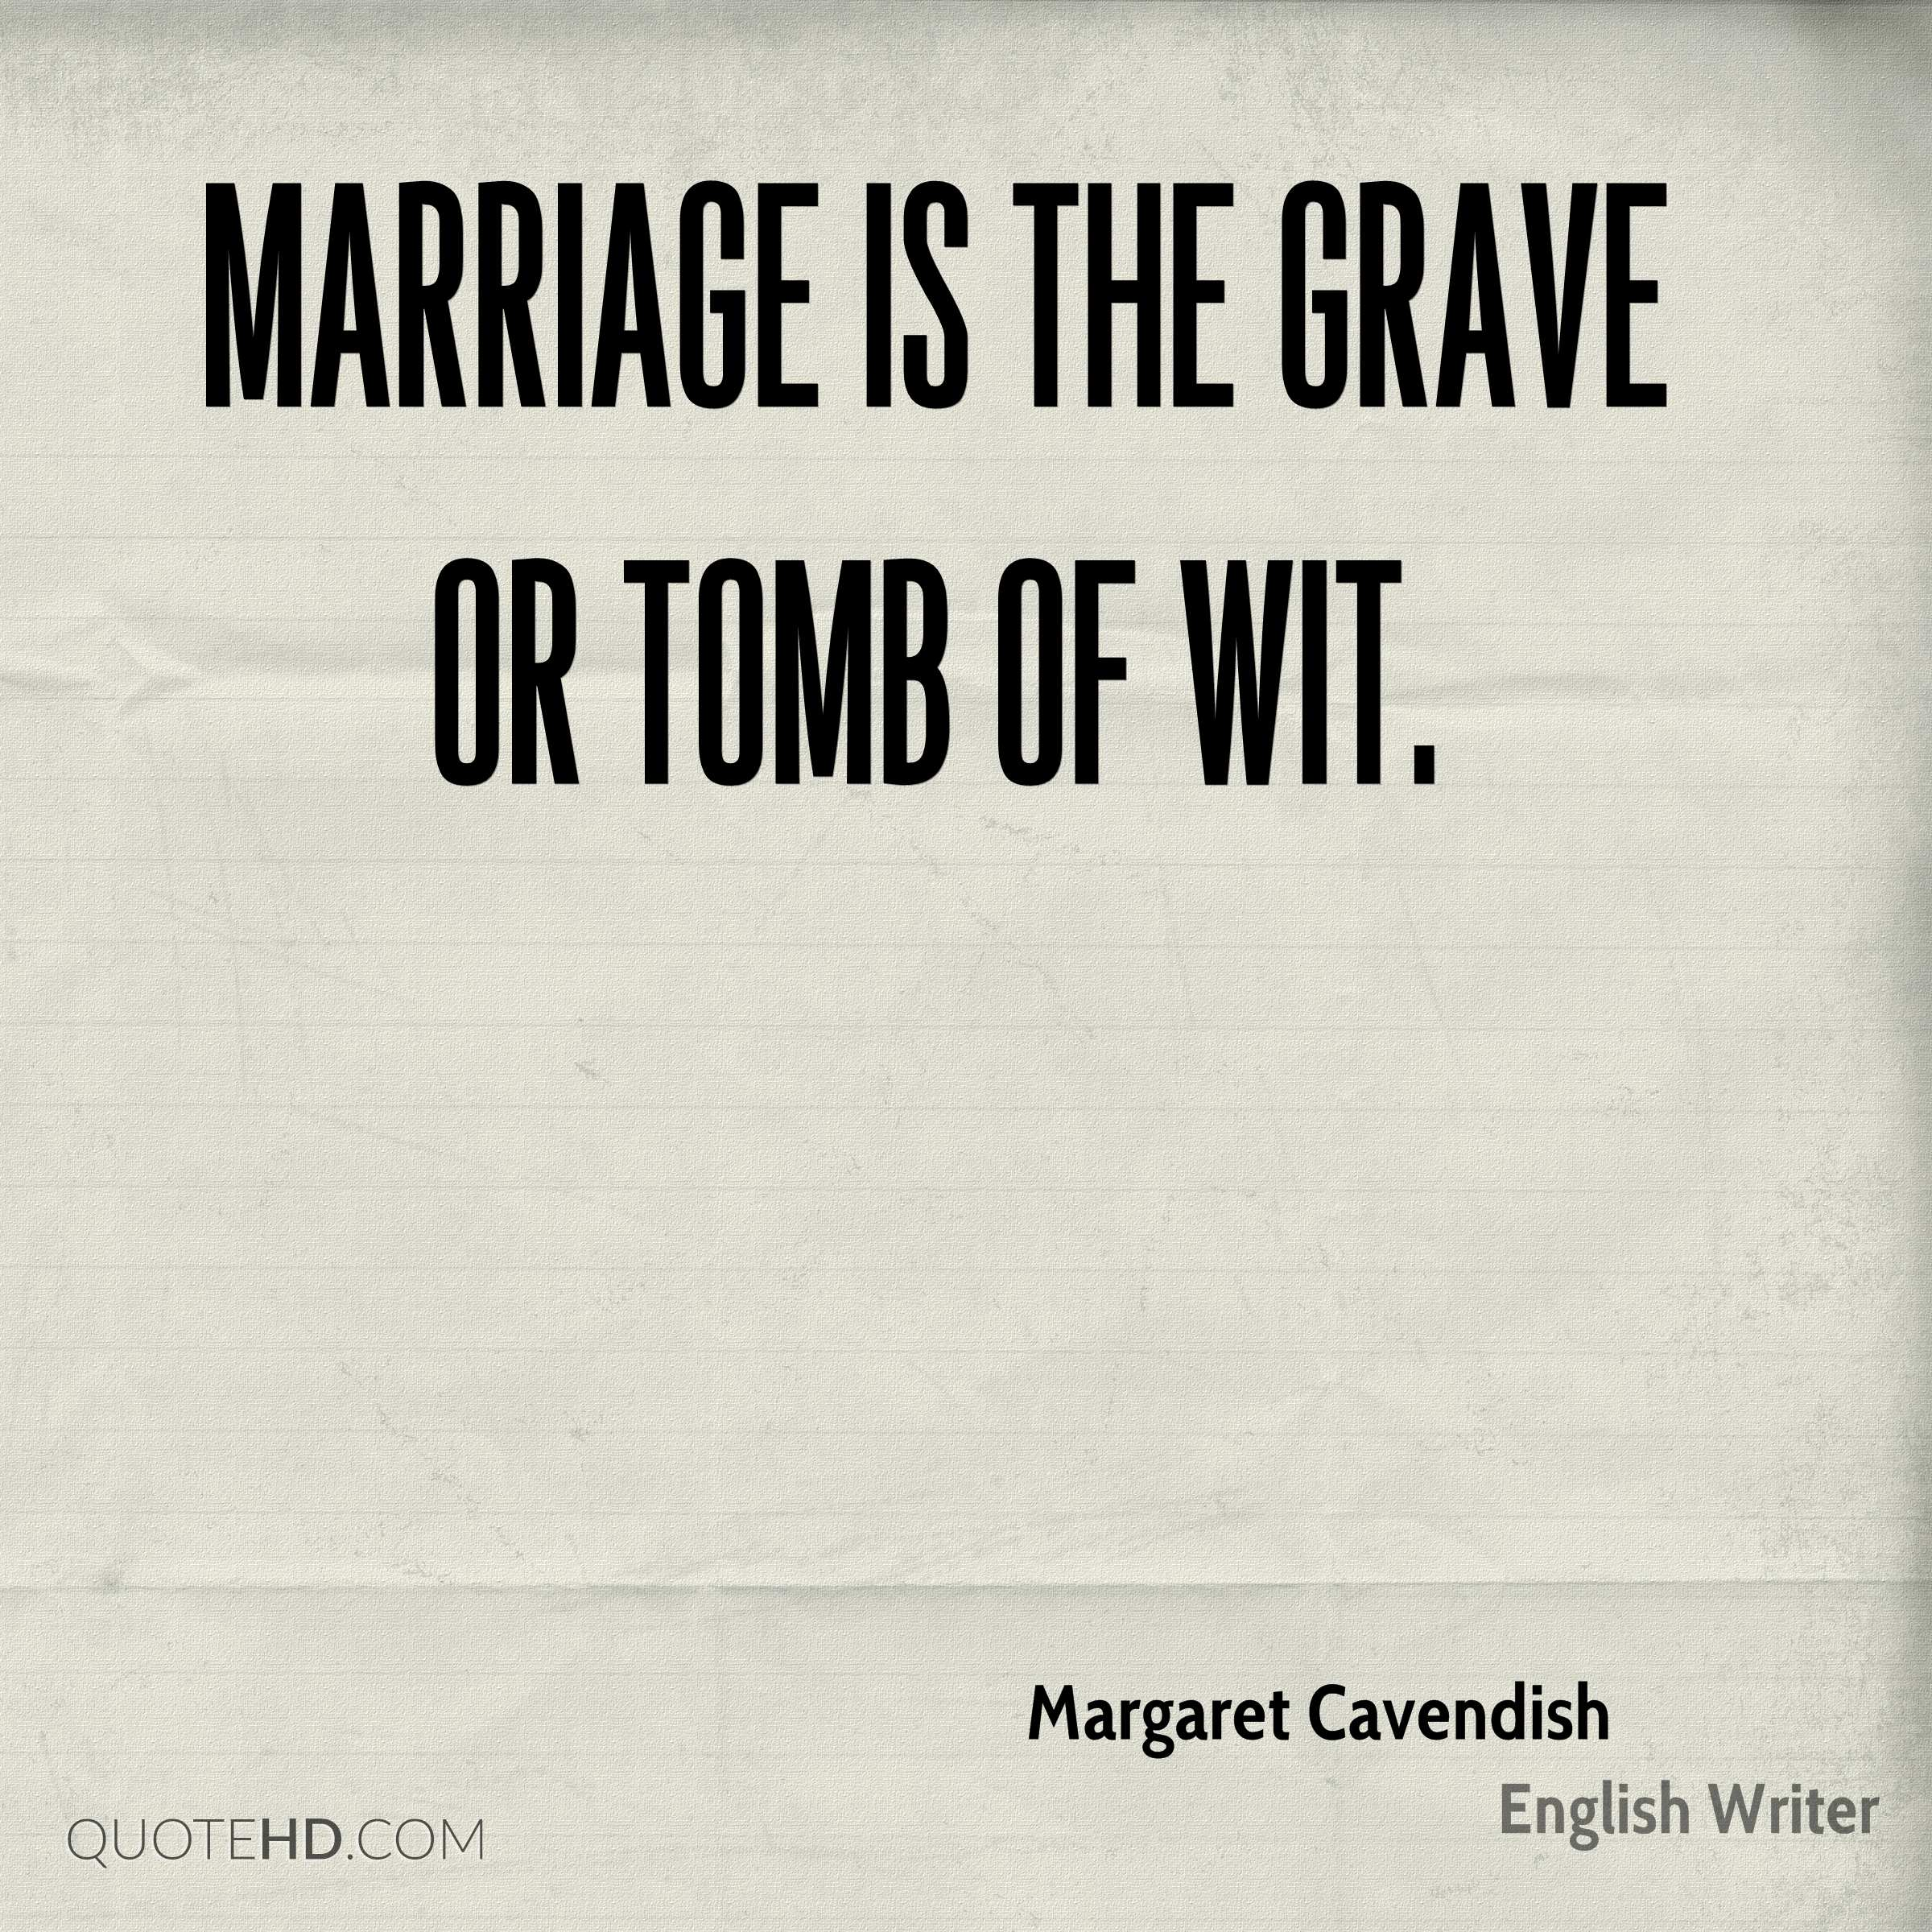 Marriage is the grave or tomb of wit.